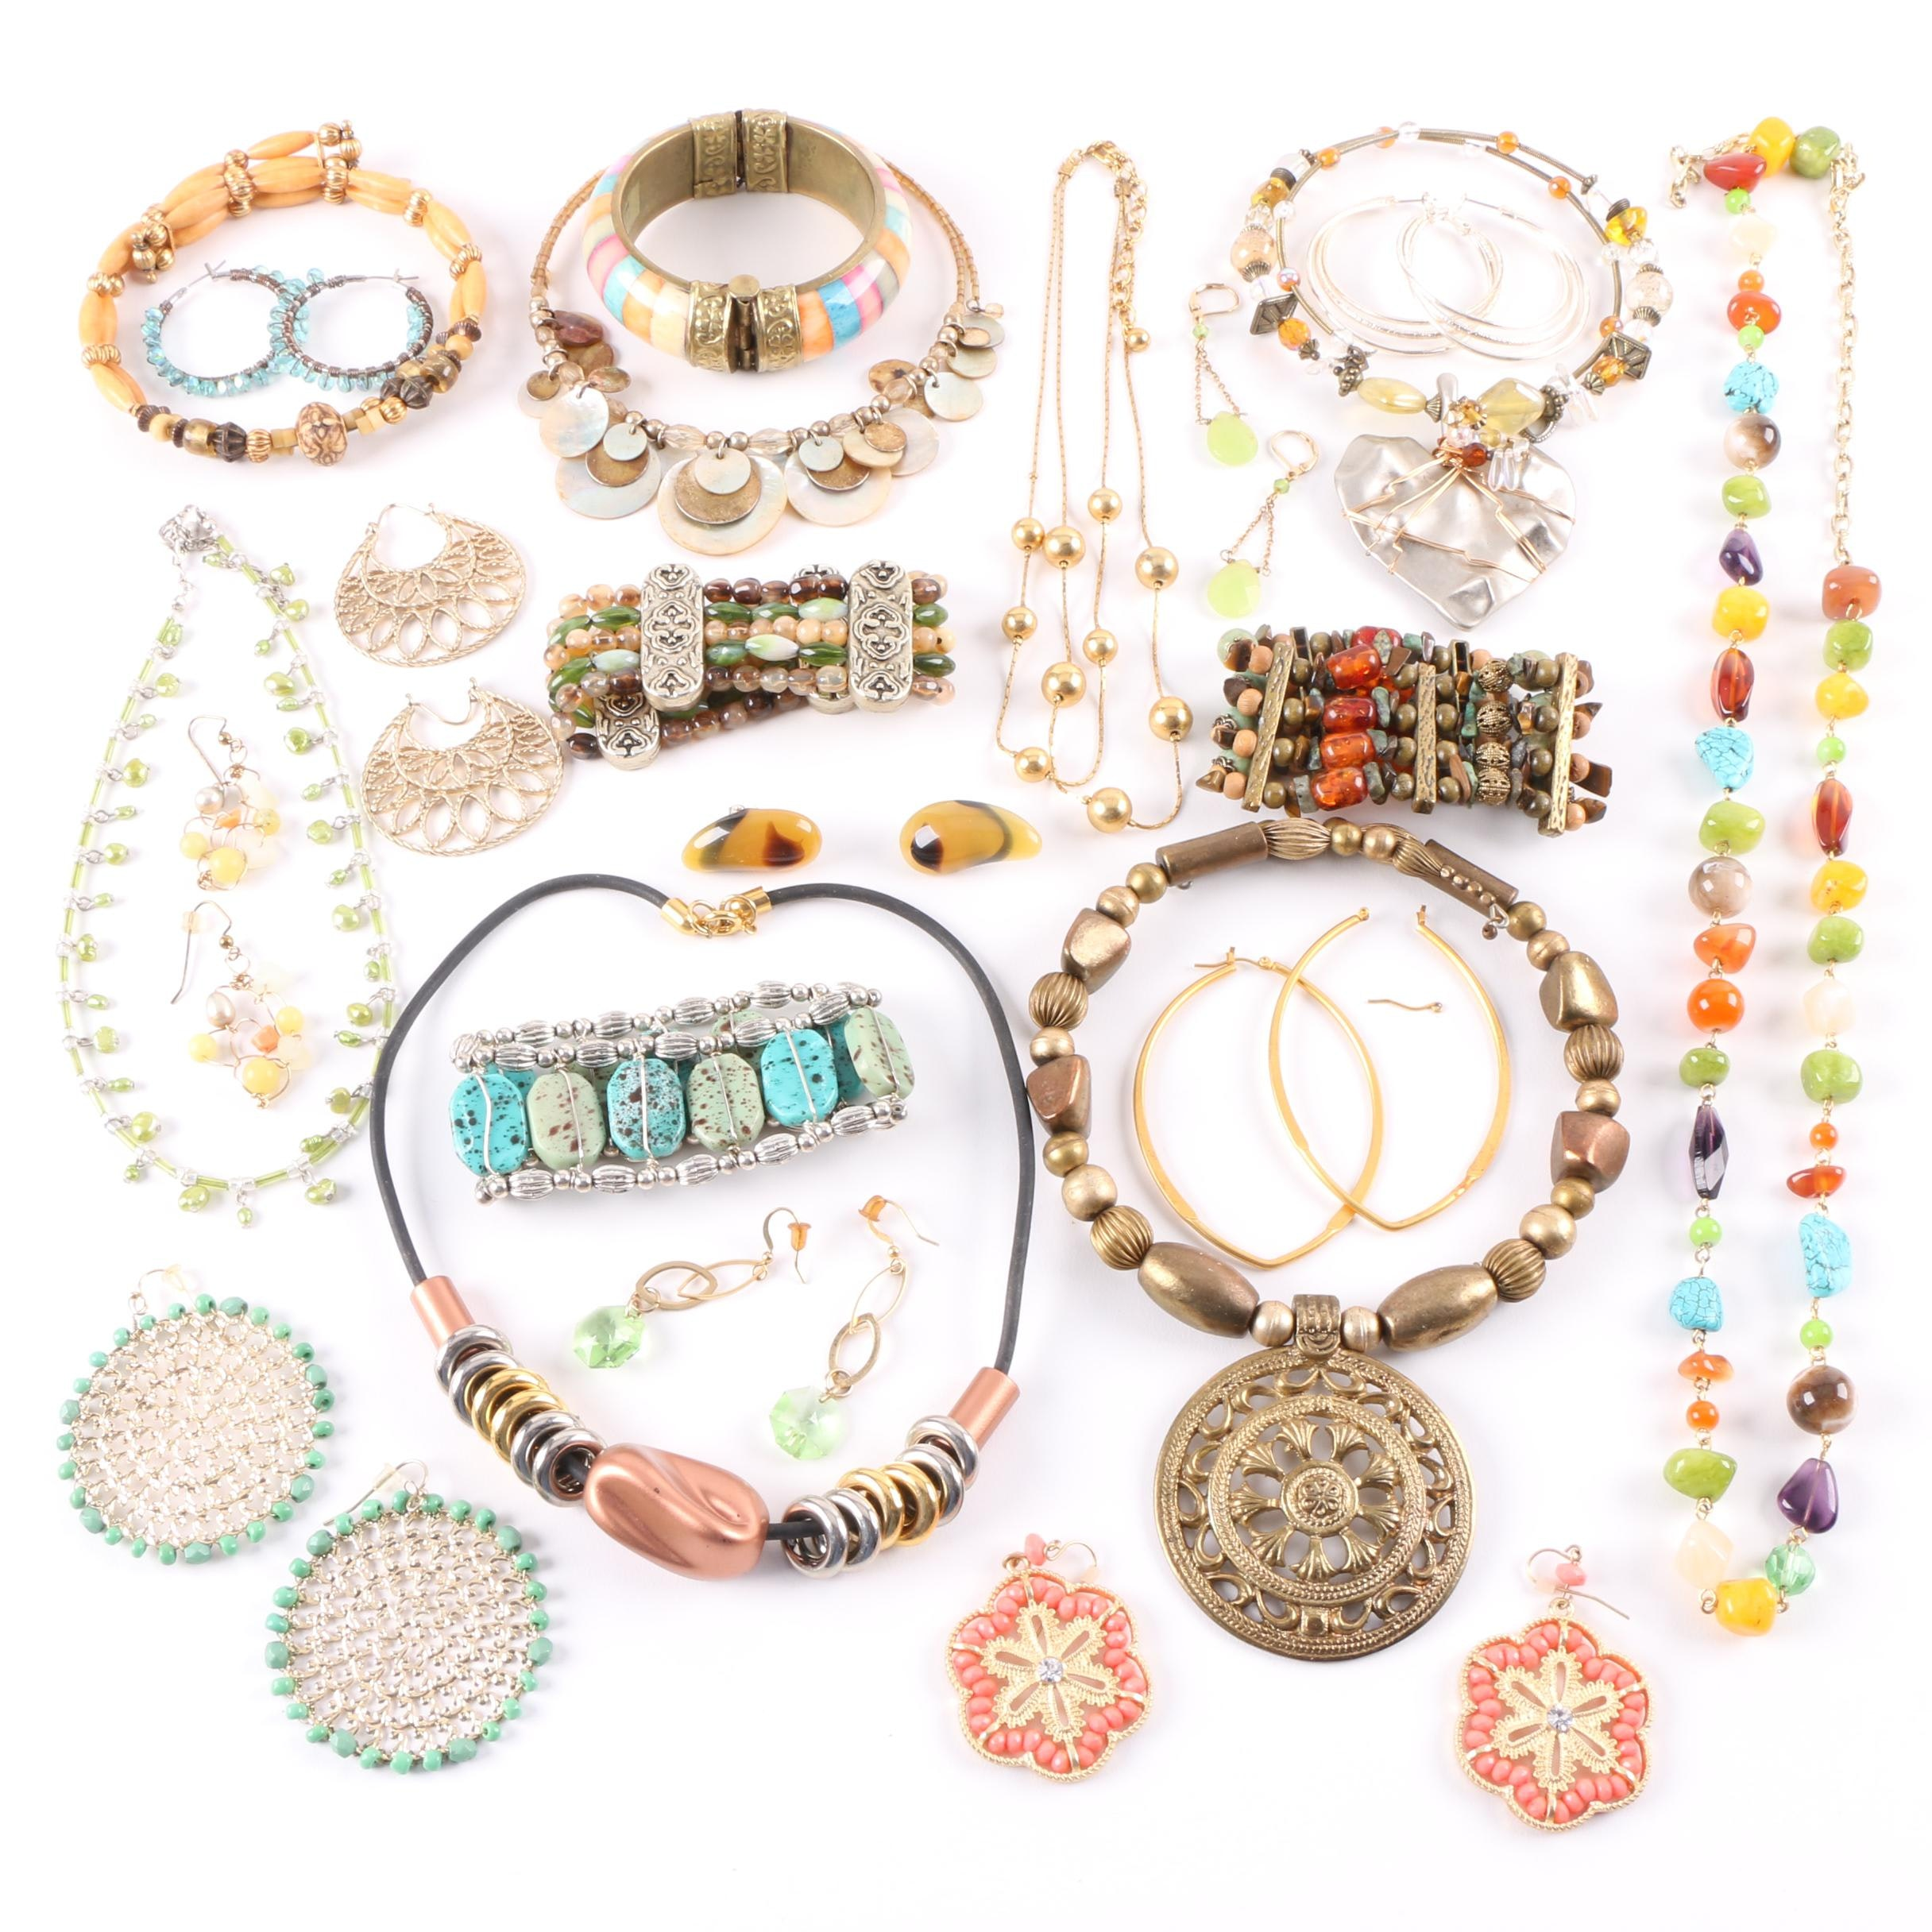 Selection of Jewelry Including Cultured Pearls and Imitation Turquoise